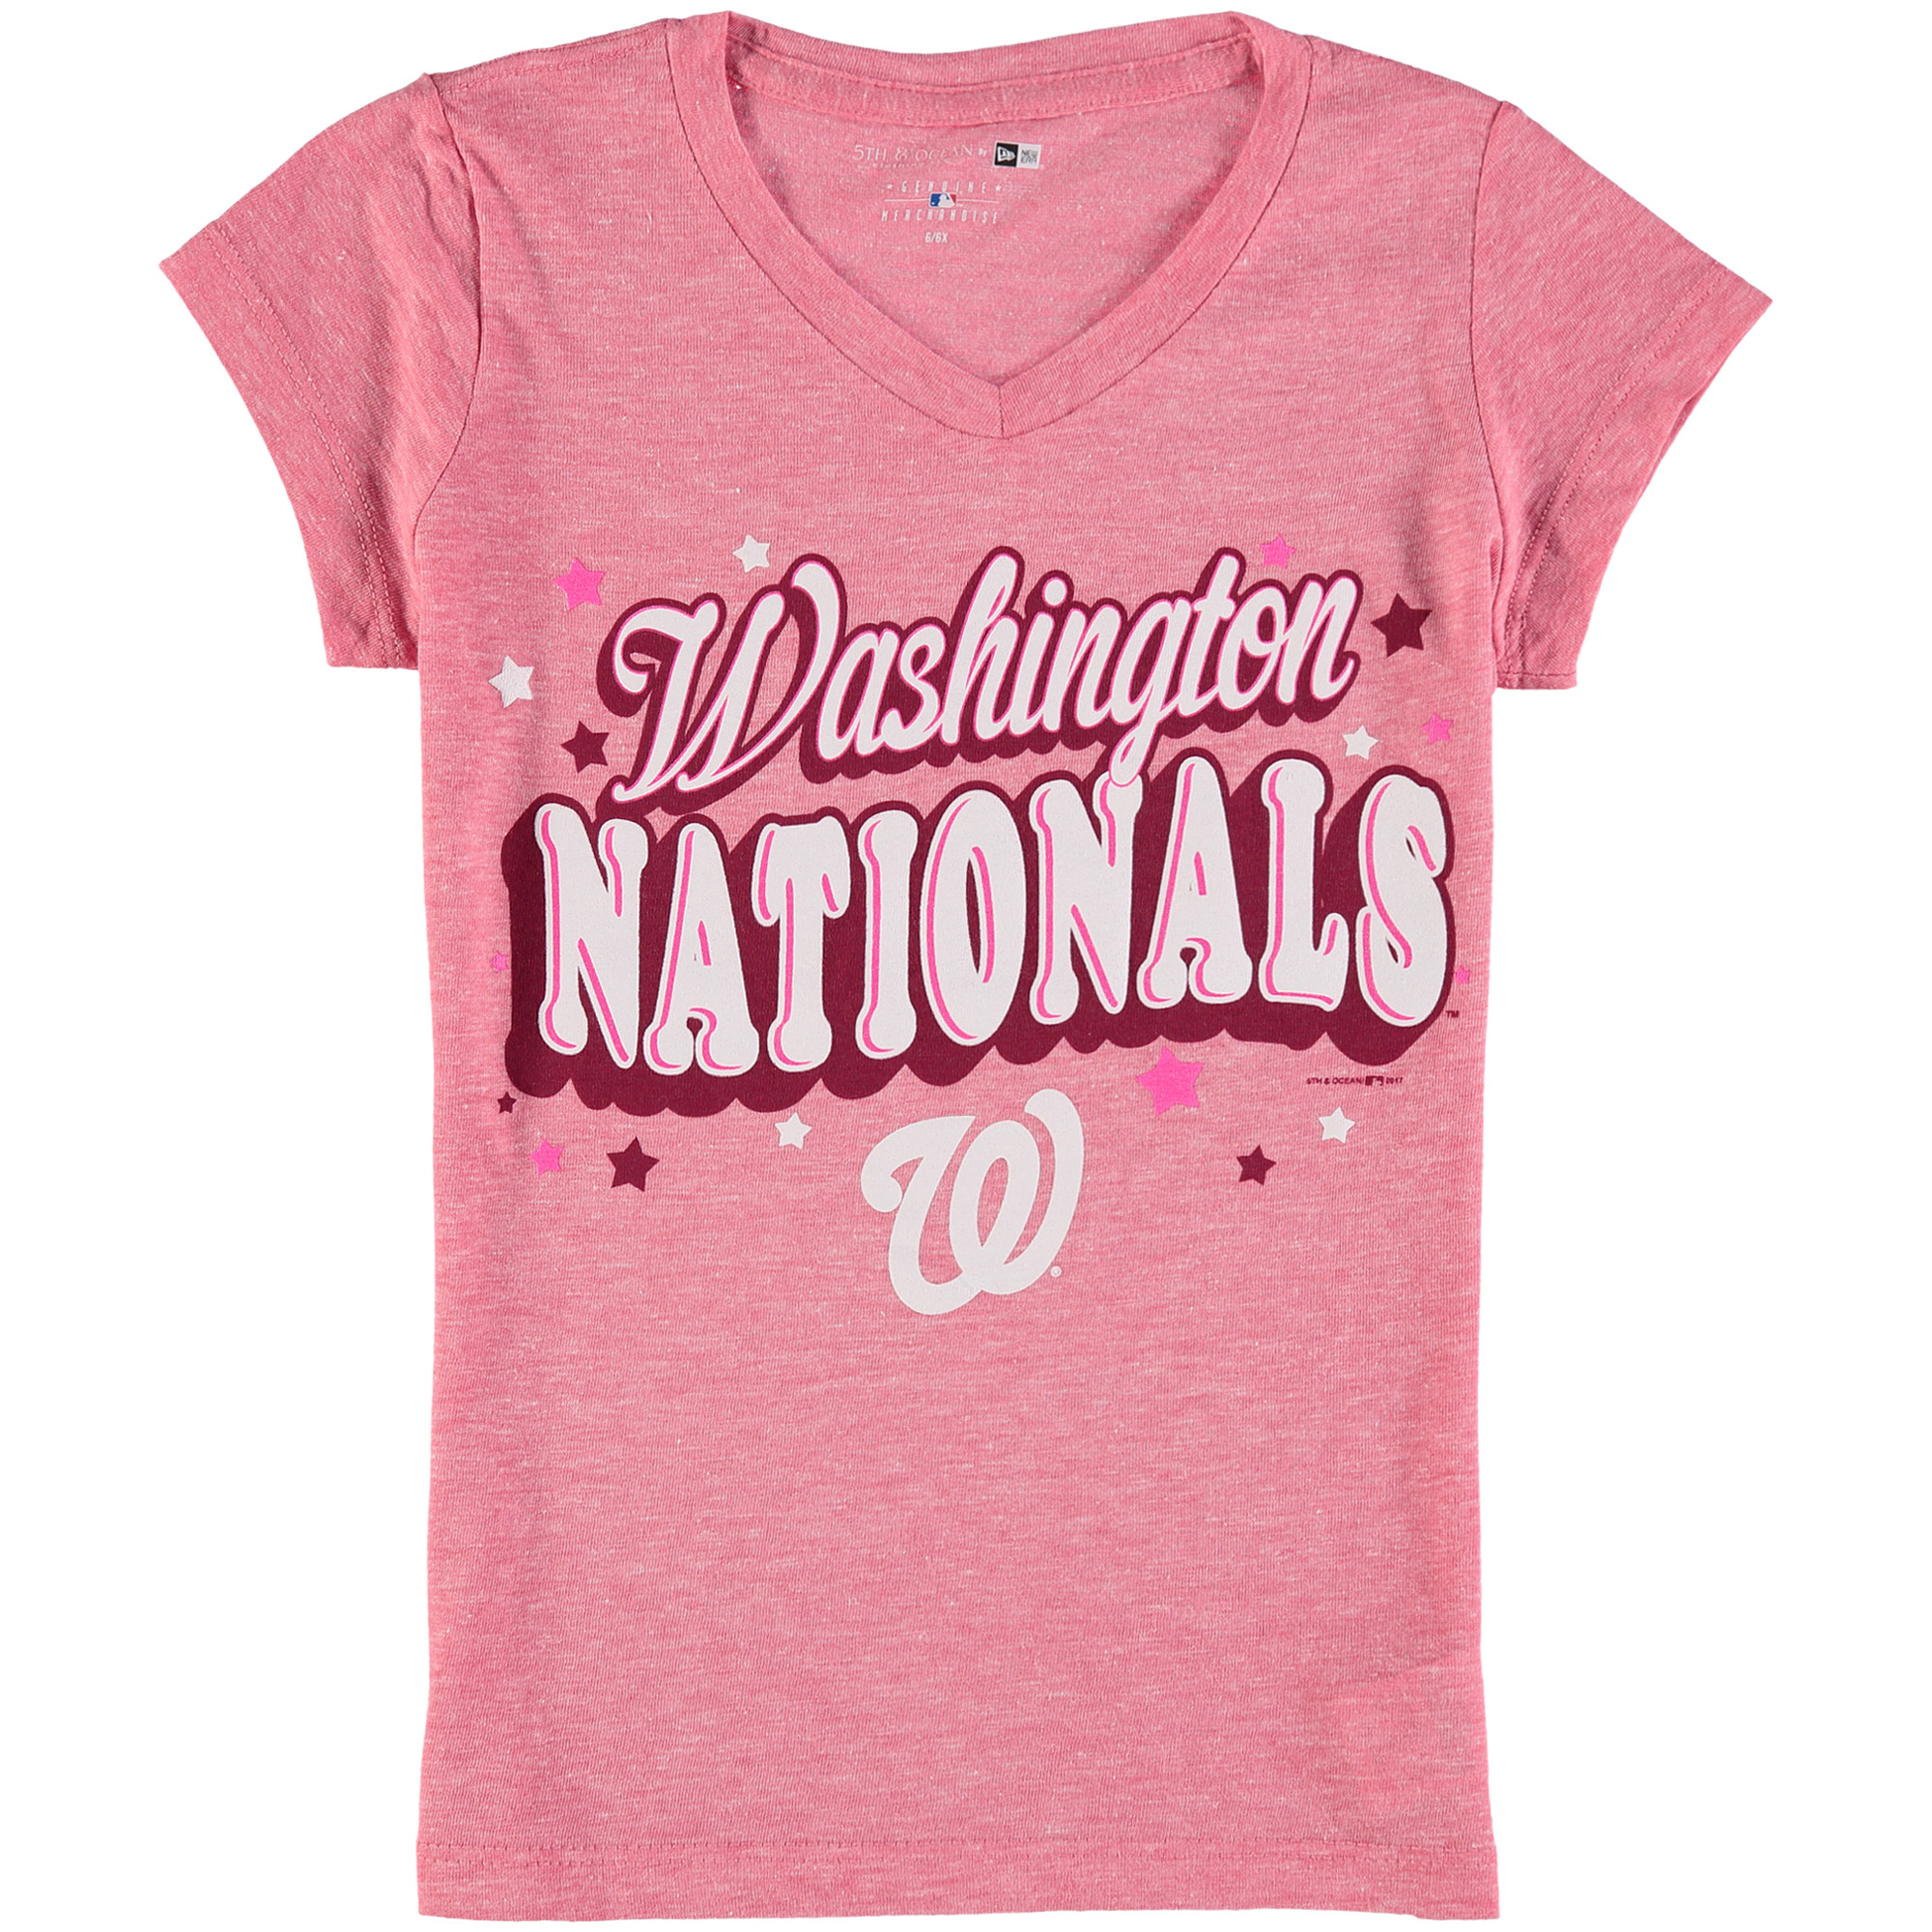 Washington Nationals 5th & Ocean by New Era Girls Youth Stars Tri-Blend V-Neck T-Shirt - Pink